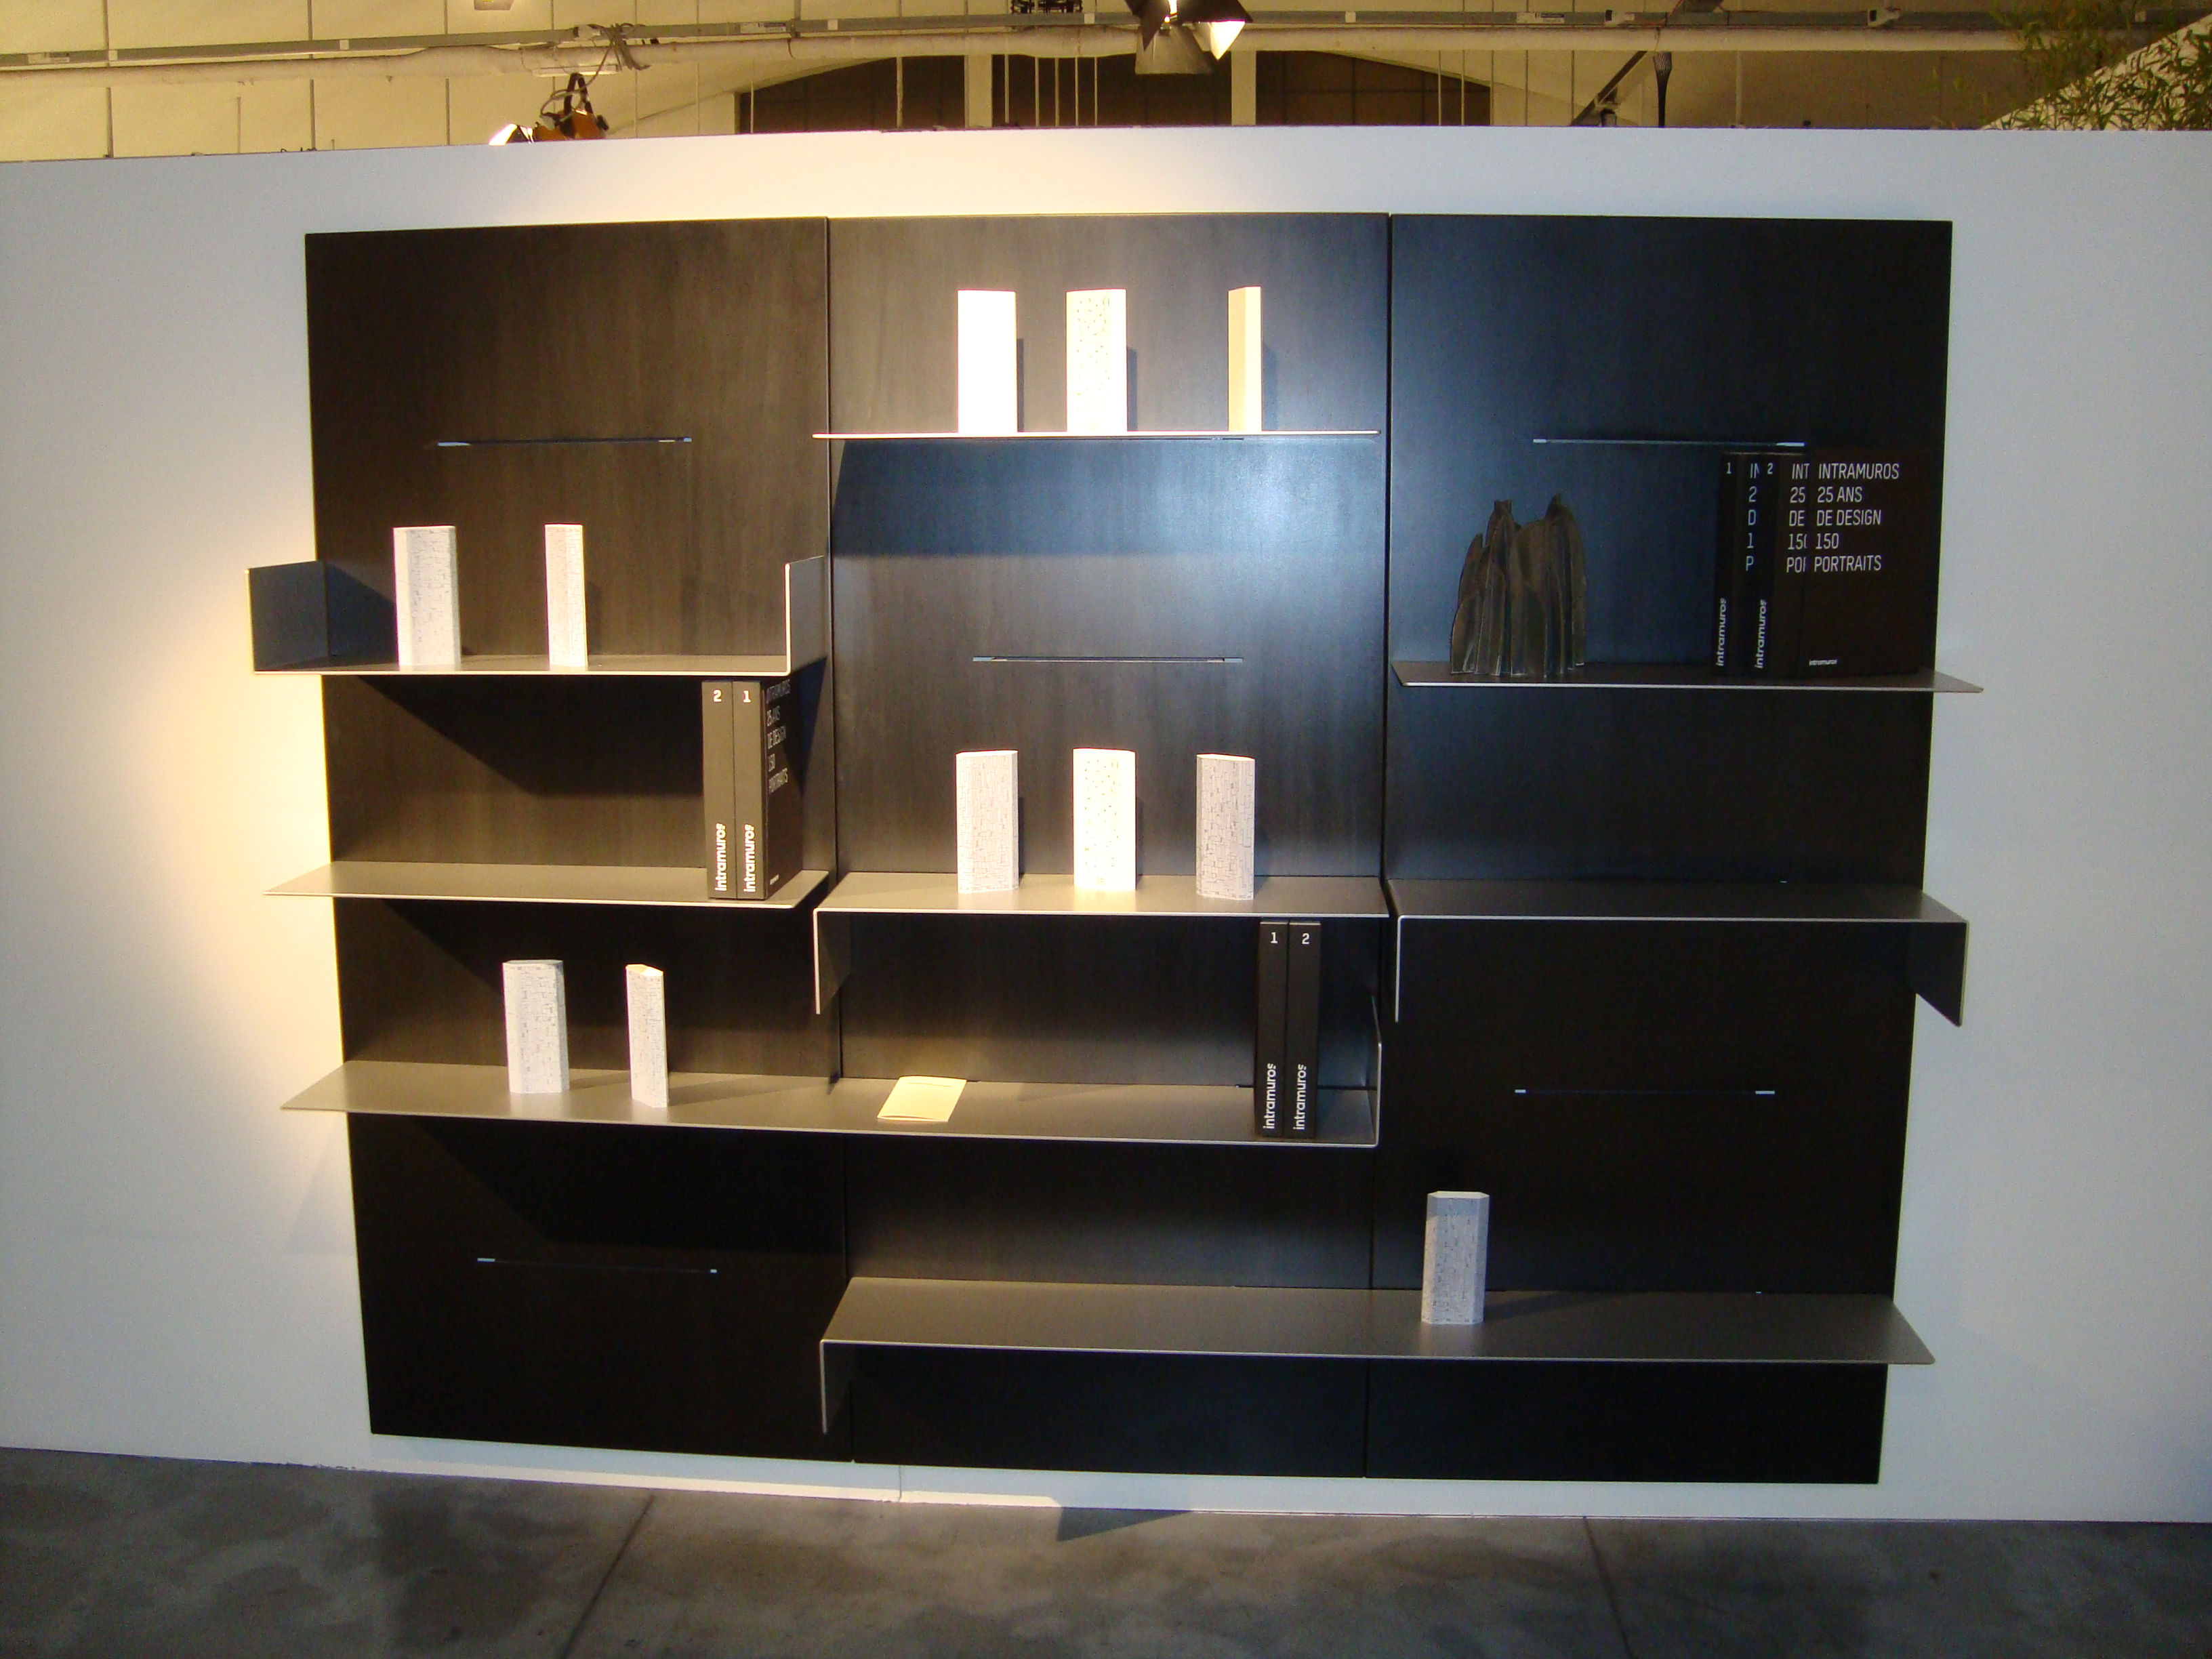 biblioth que iwall panneau mural l 80 cm x h 190 cm noir. Black Bedroom Furniture Sets. Home Design Ideas